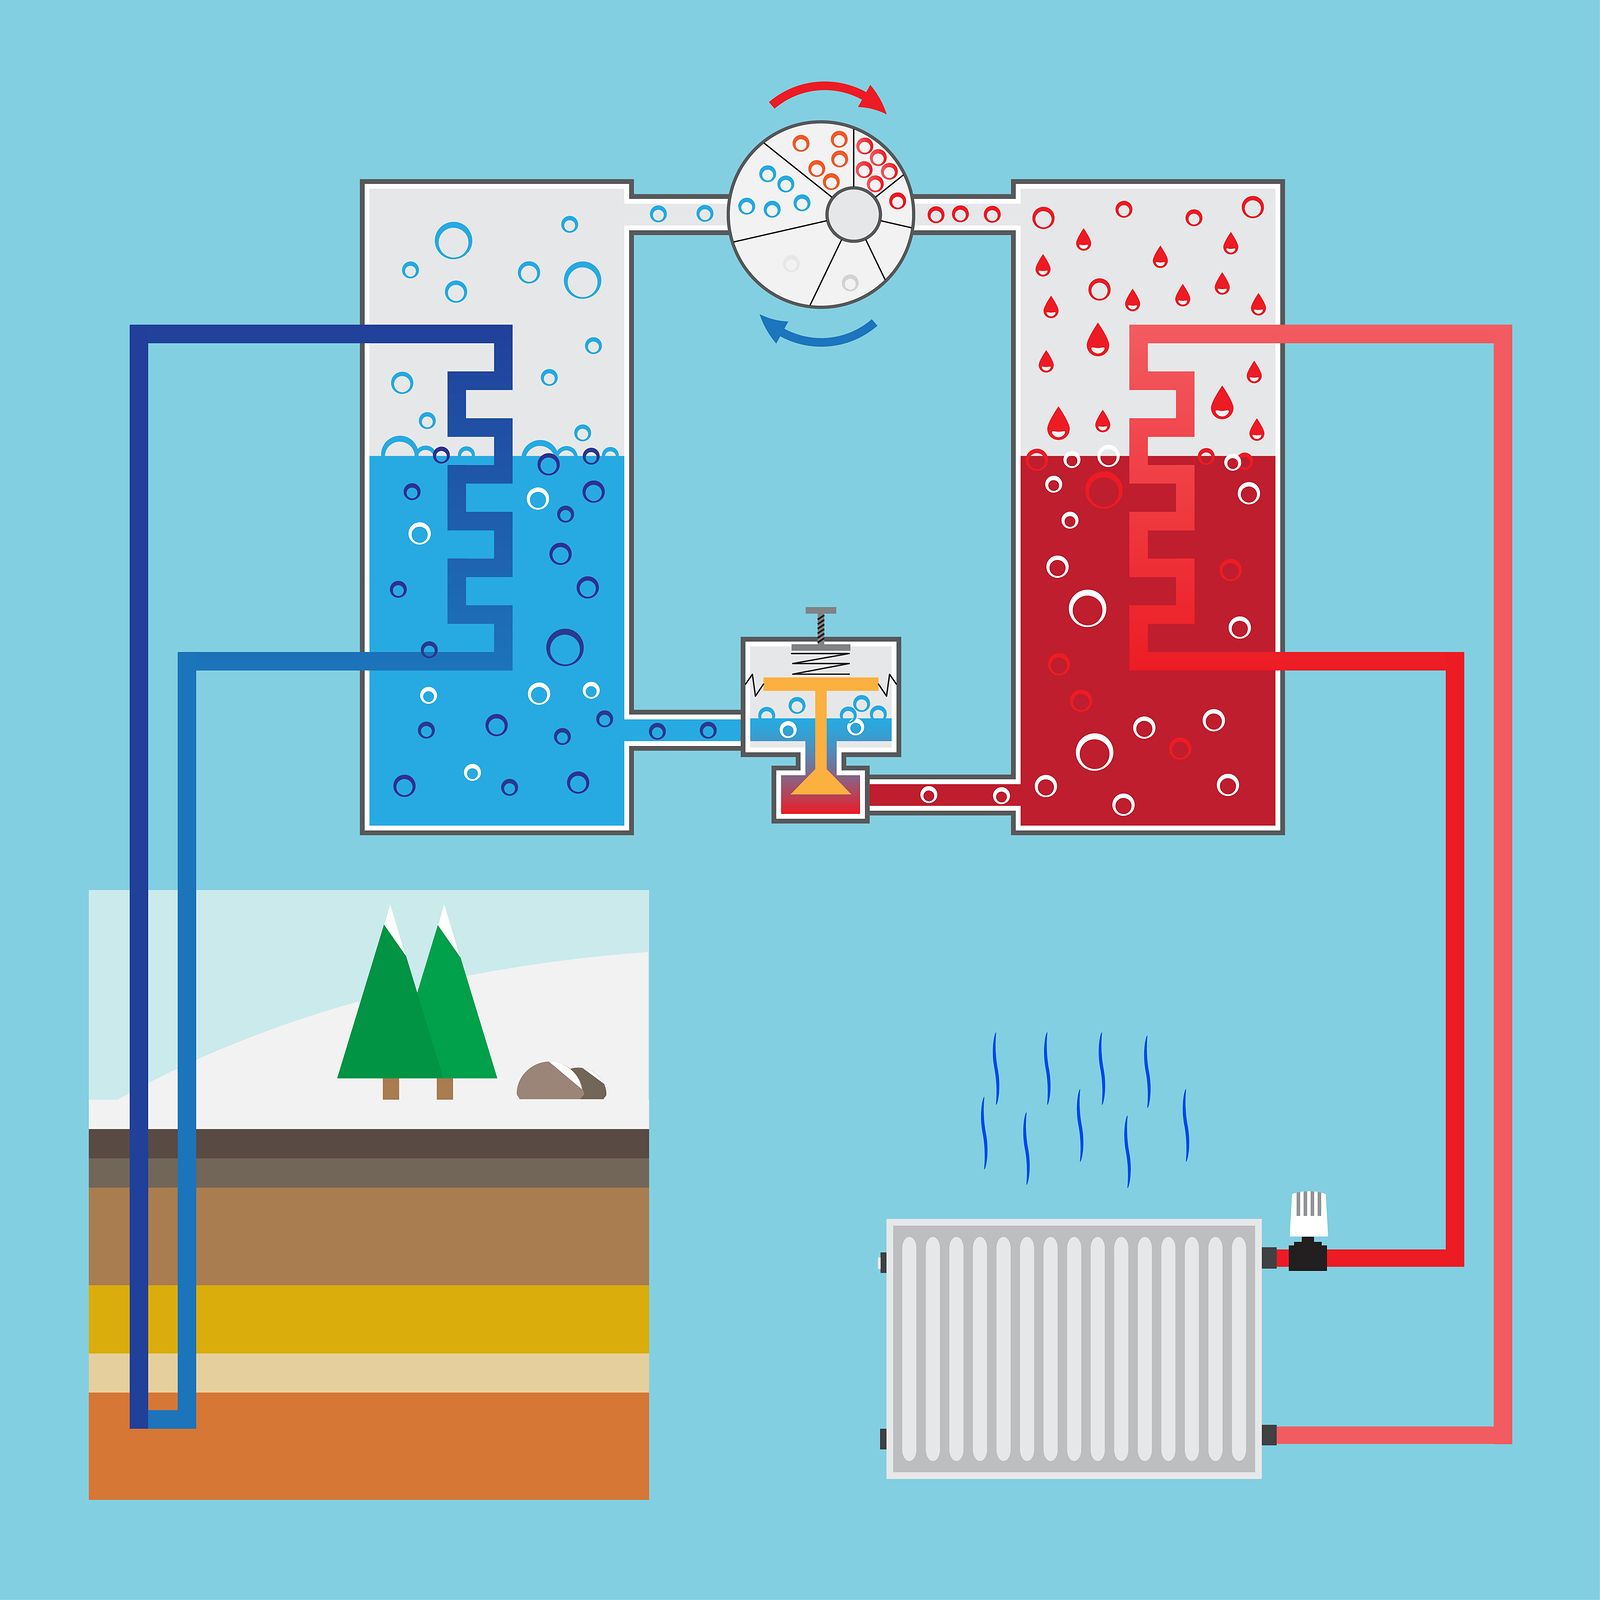 hight resolution of how do geothermal systems work